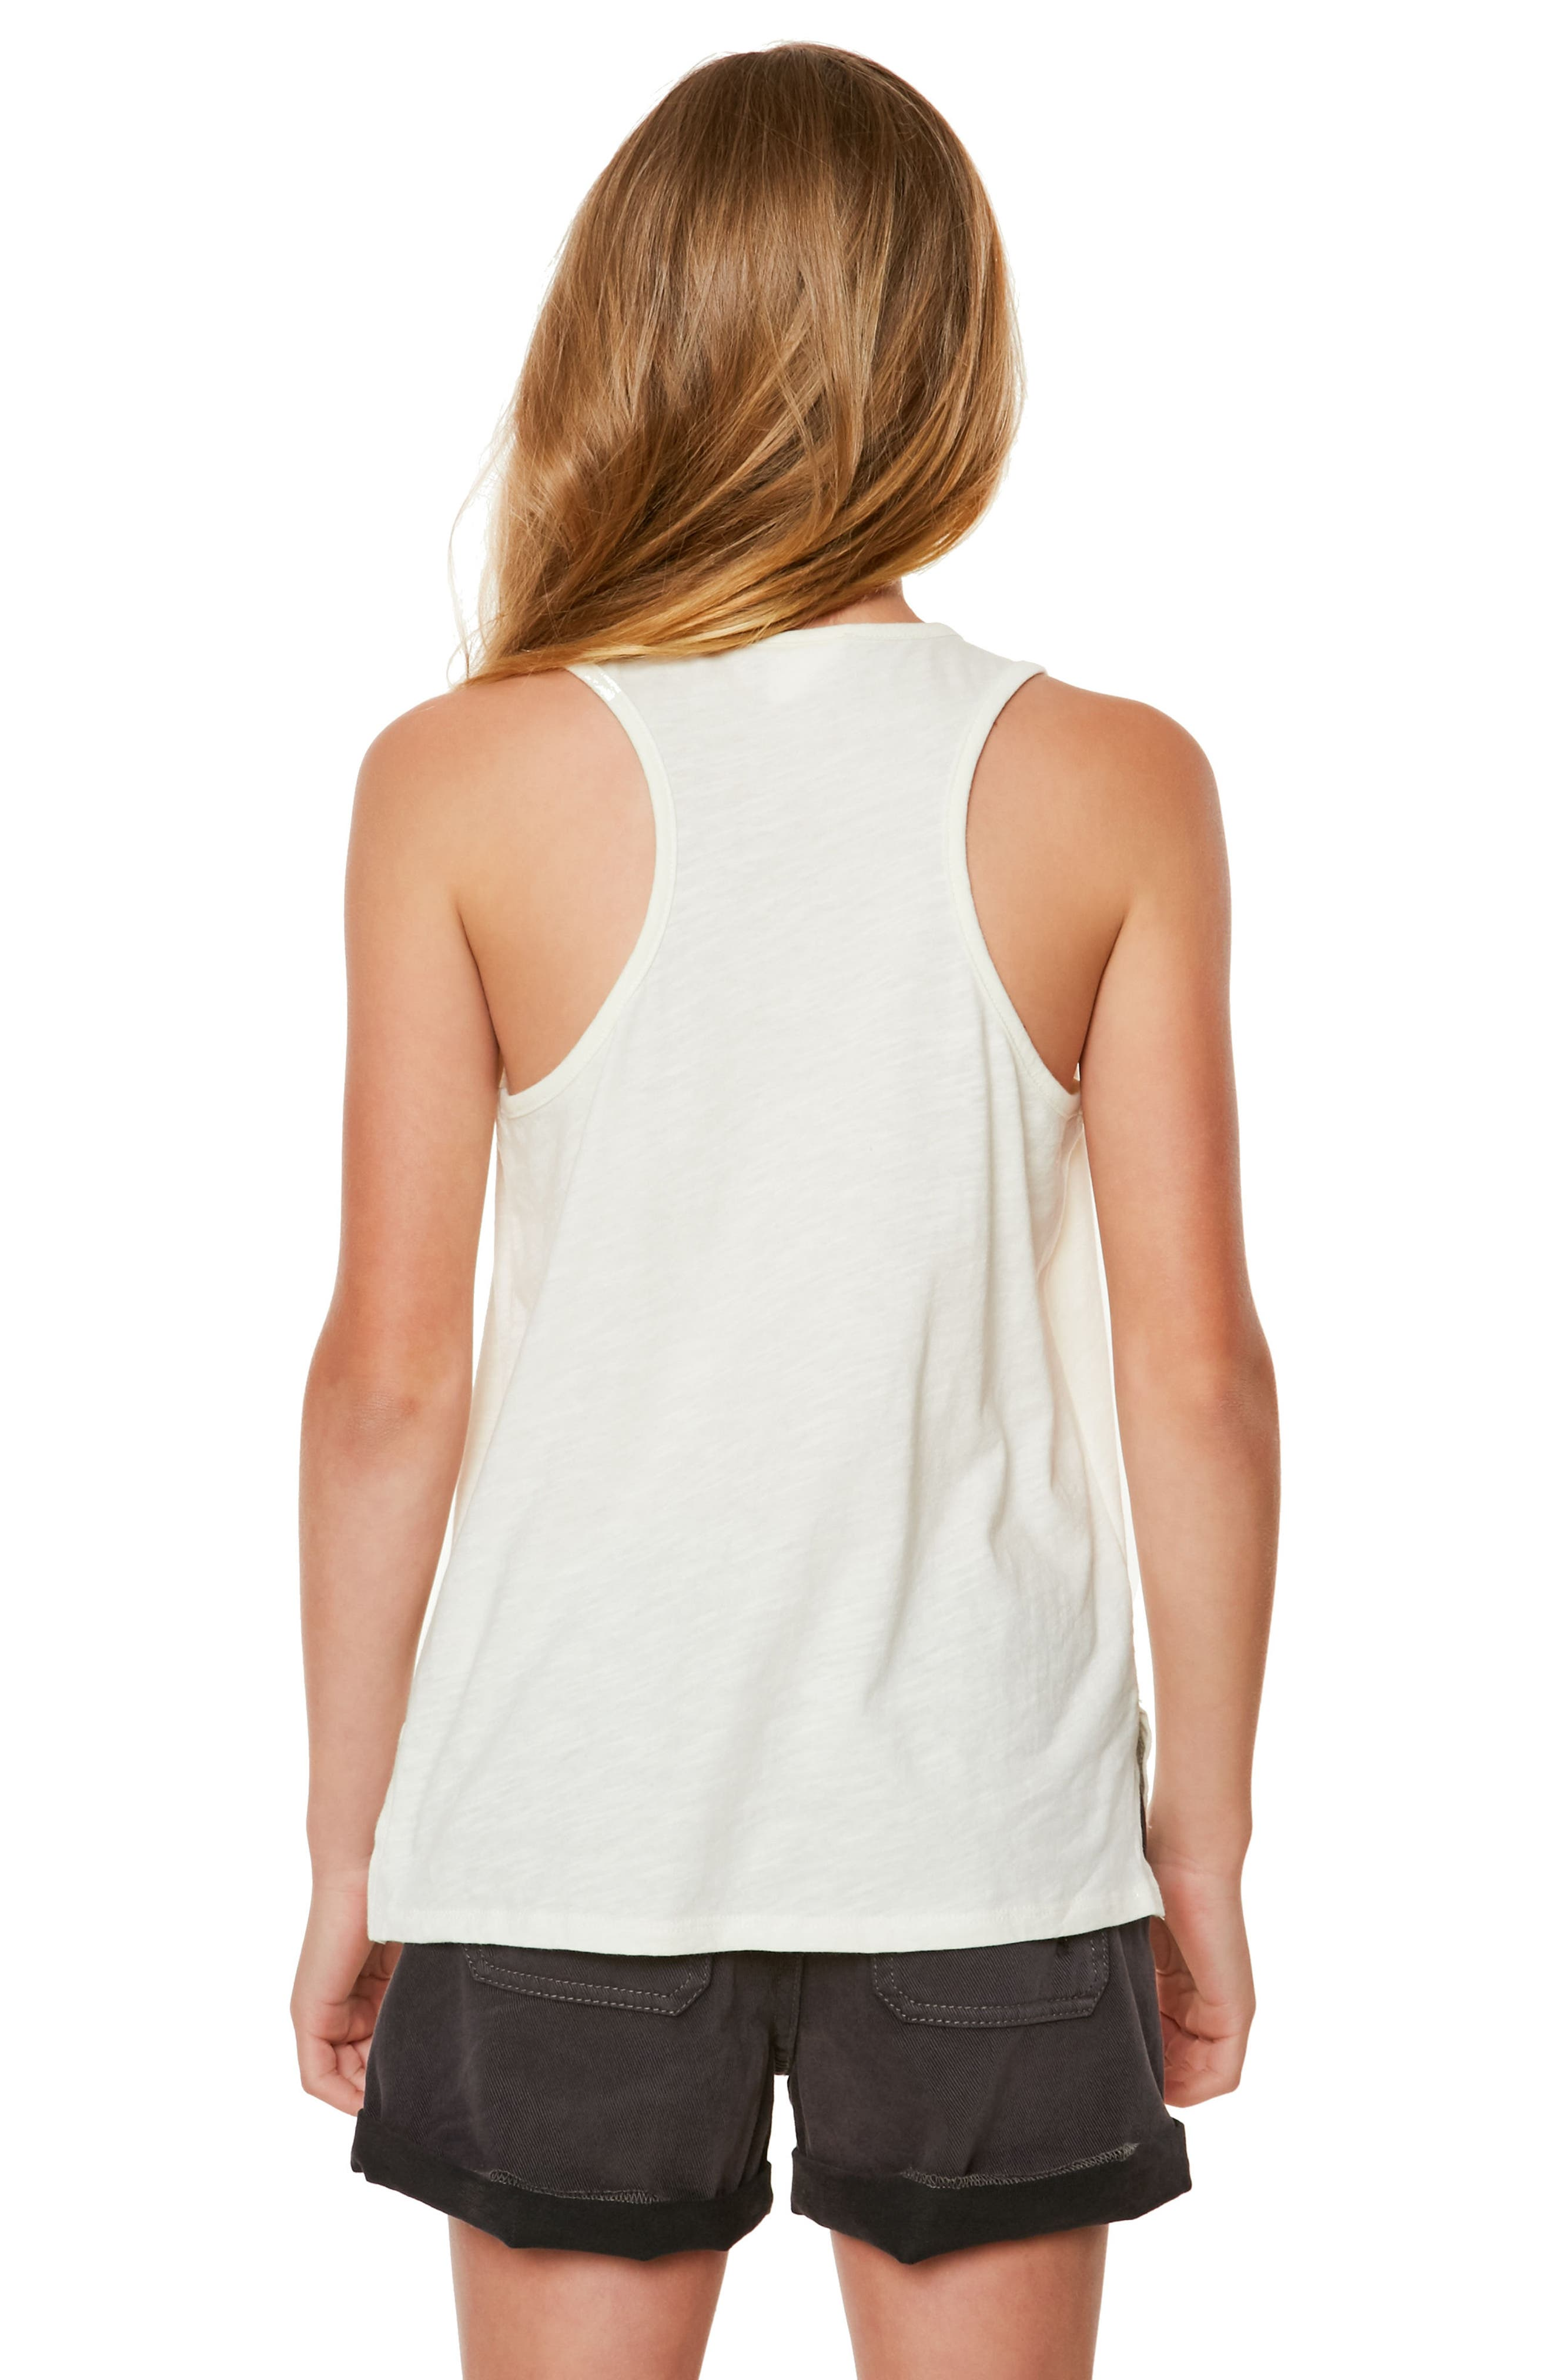 O'NEILL,                             Soleil Graphic Tank,                             Alternate thumbnail 3, color,                             250